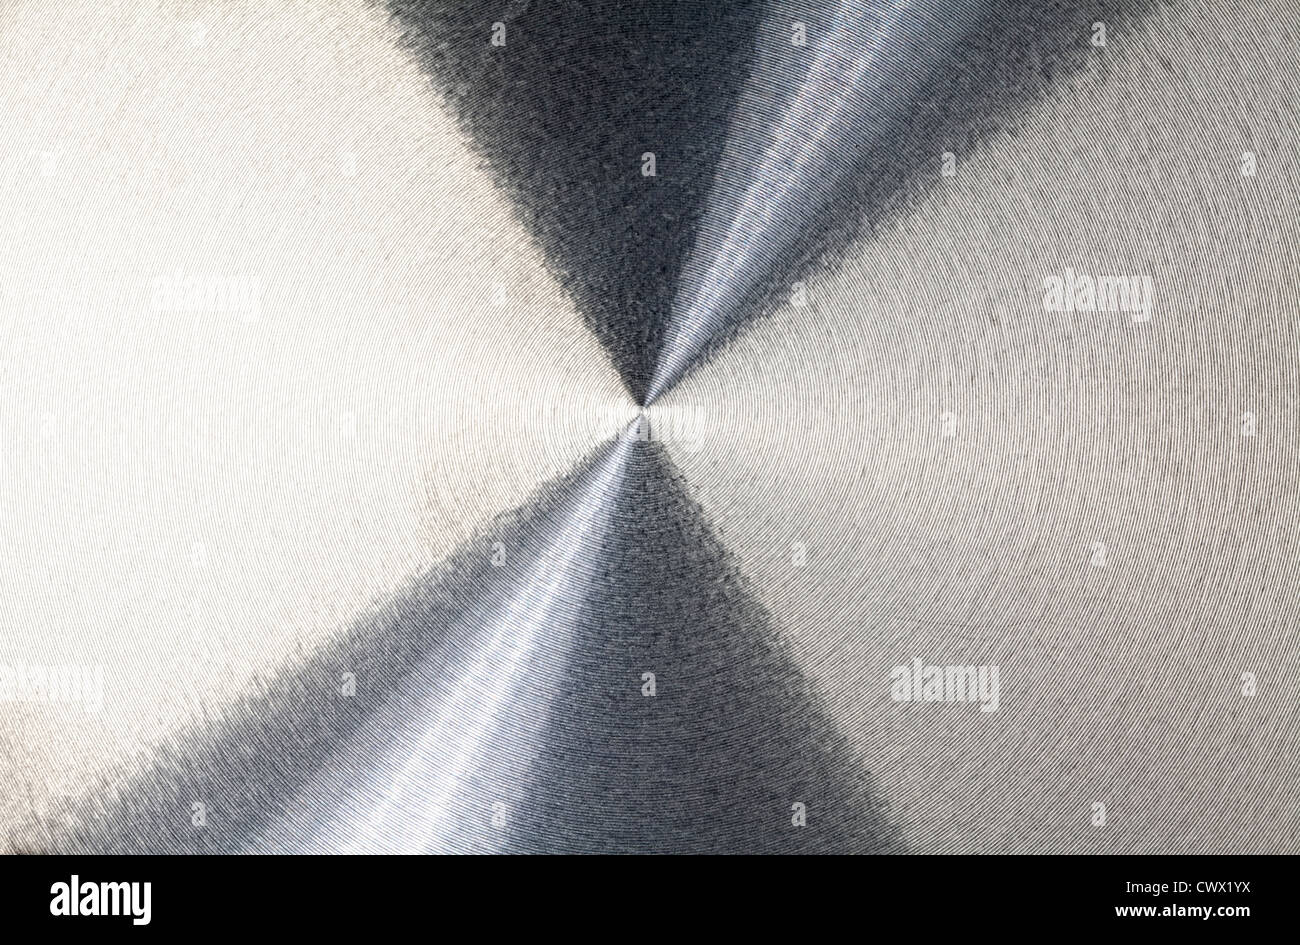 Reflections on a round aluminum plate - Stock Image